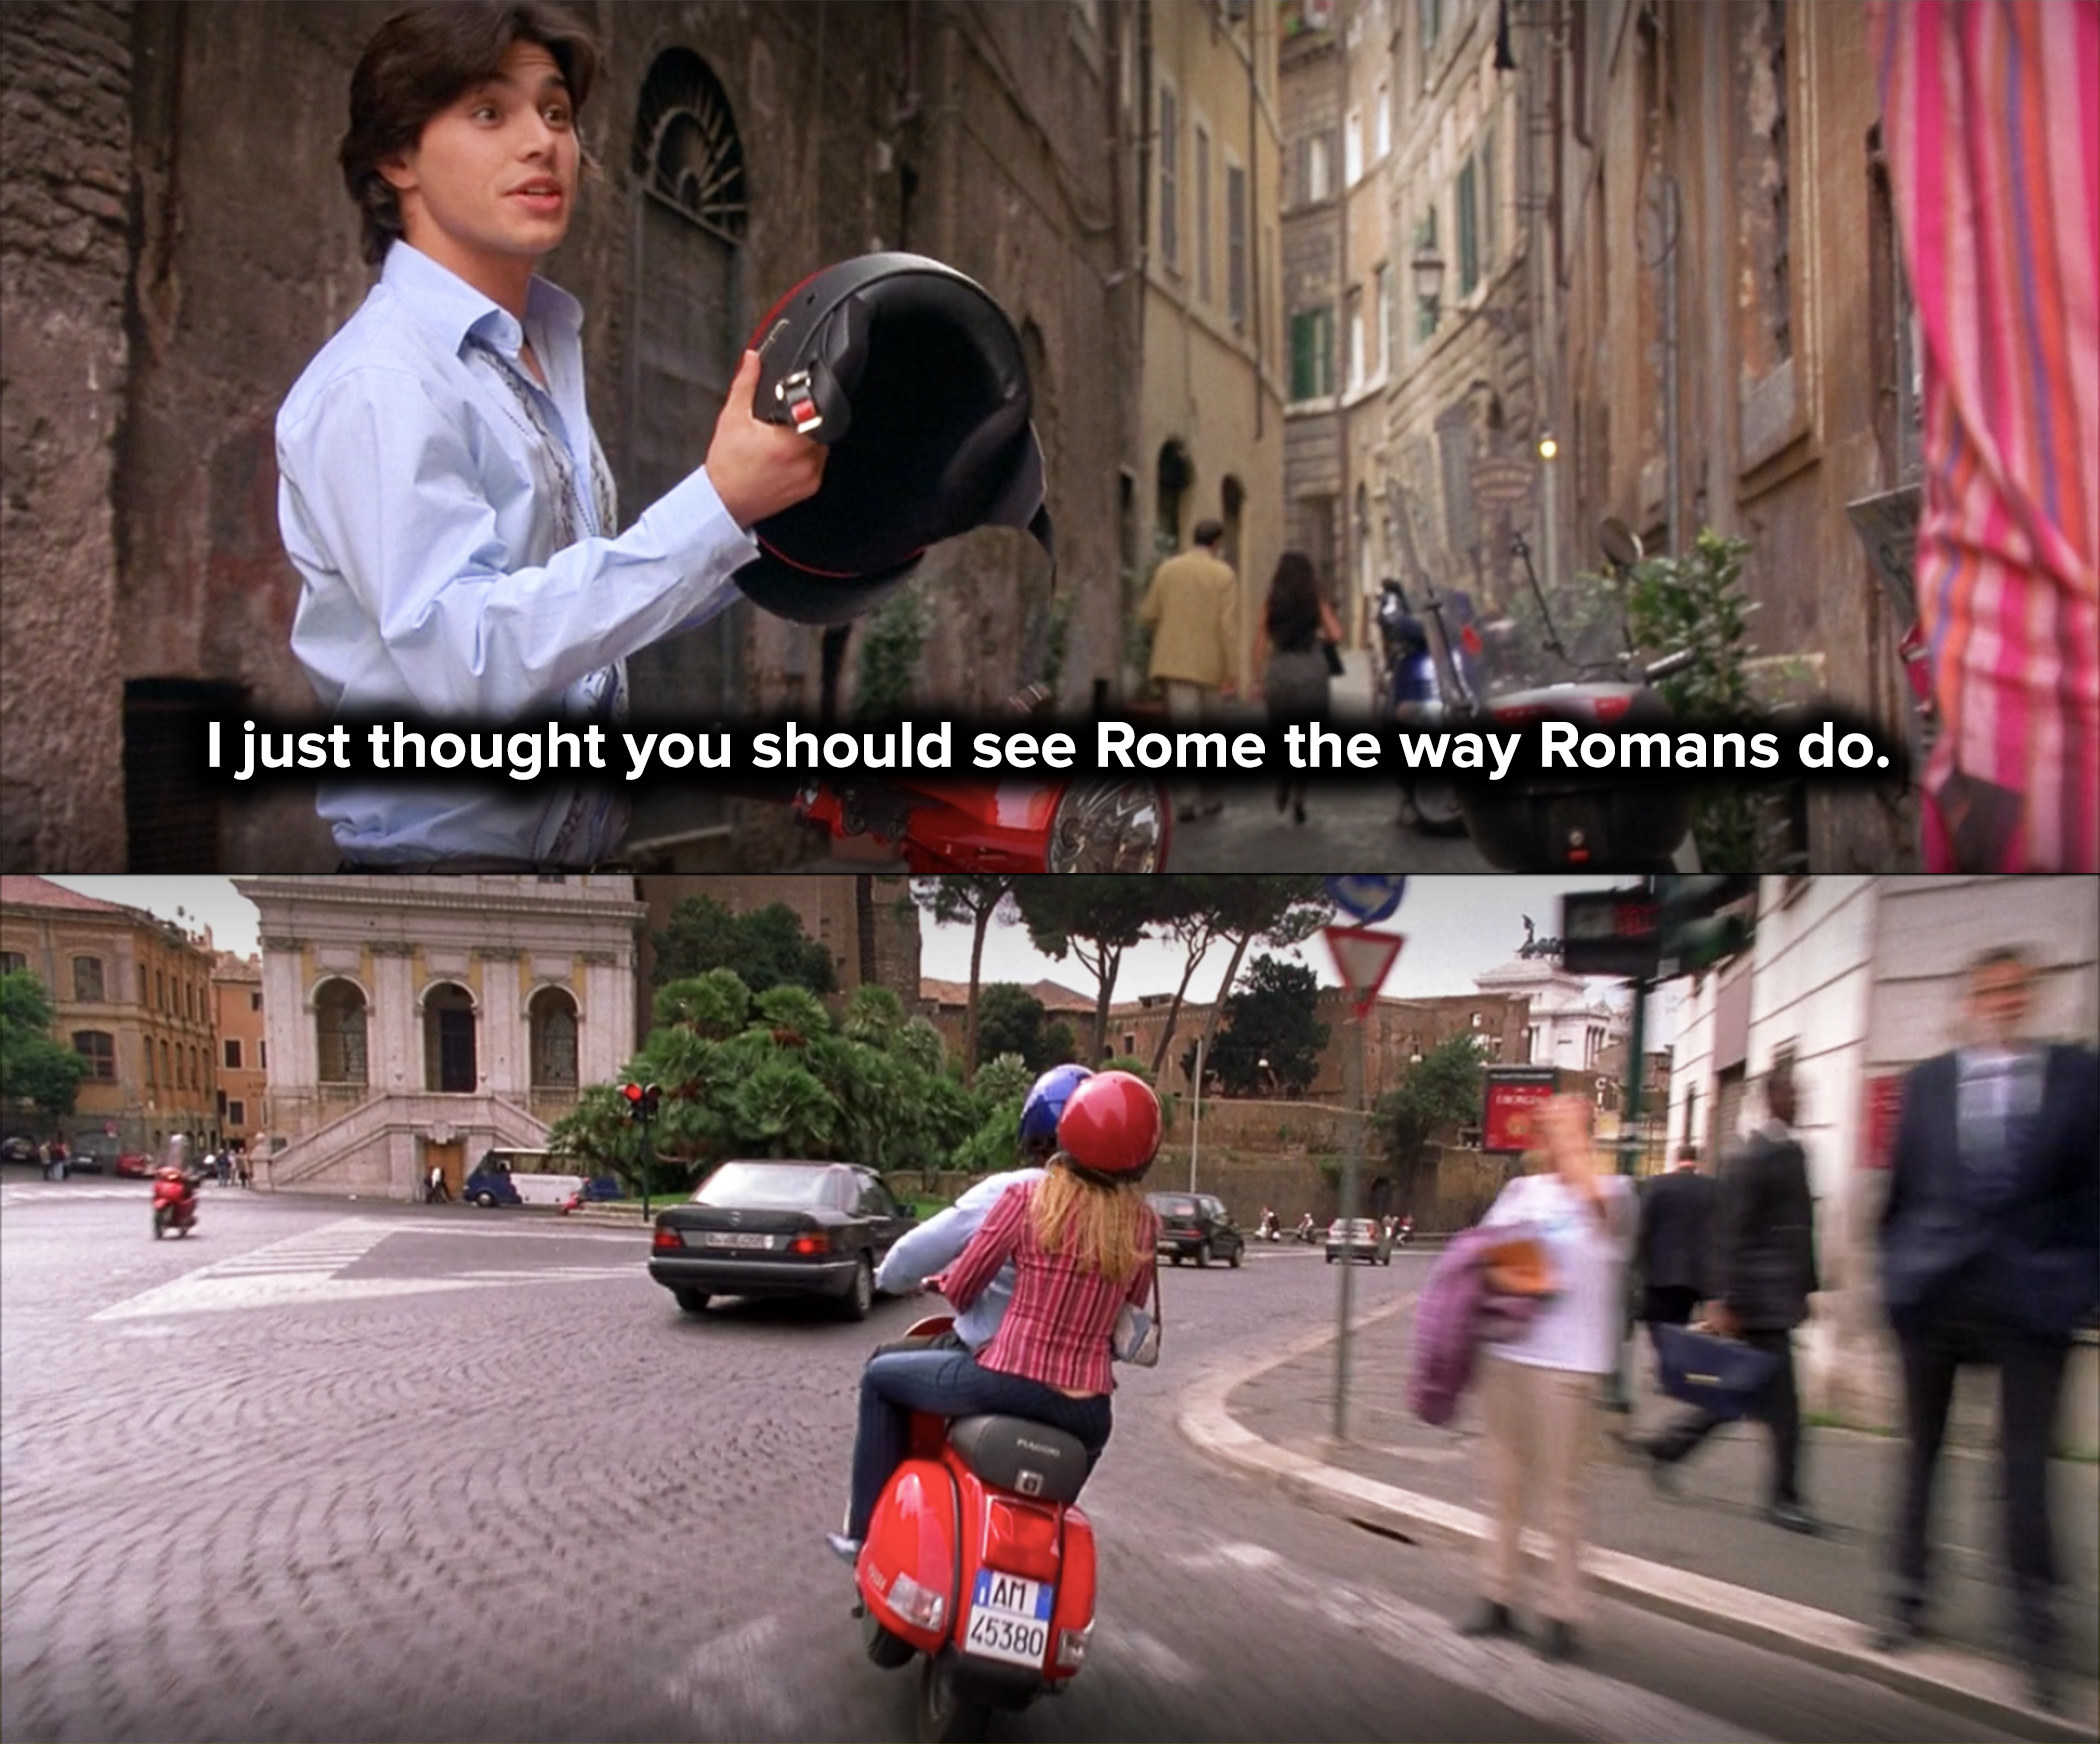 Paolo offers Lizzie a ride on his Vespa